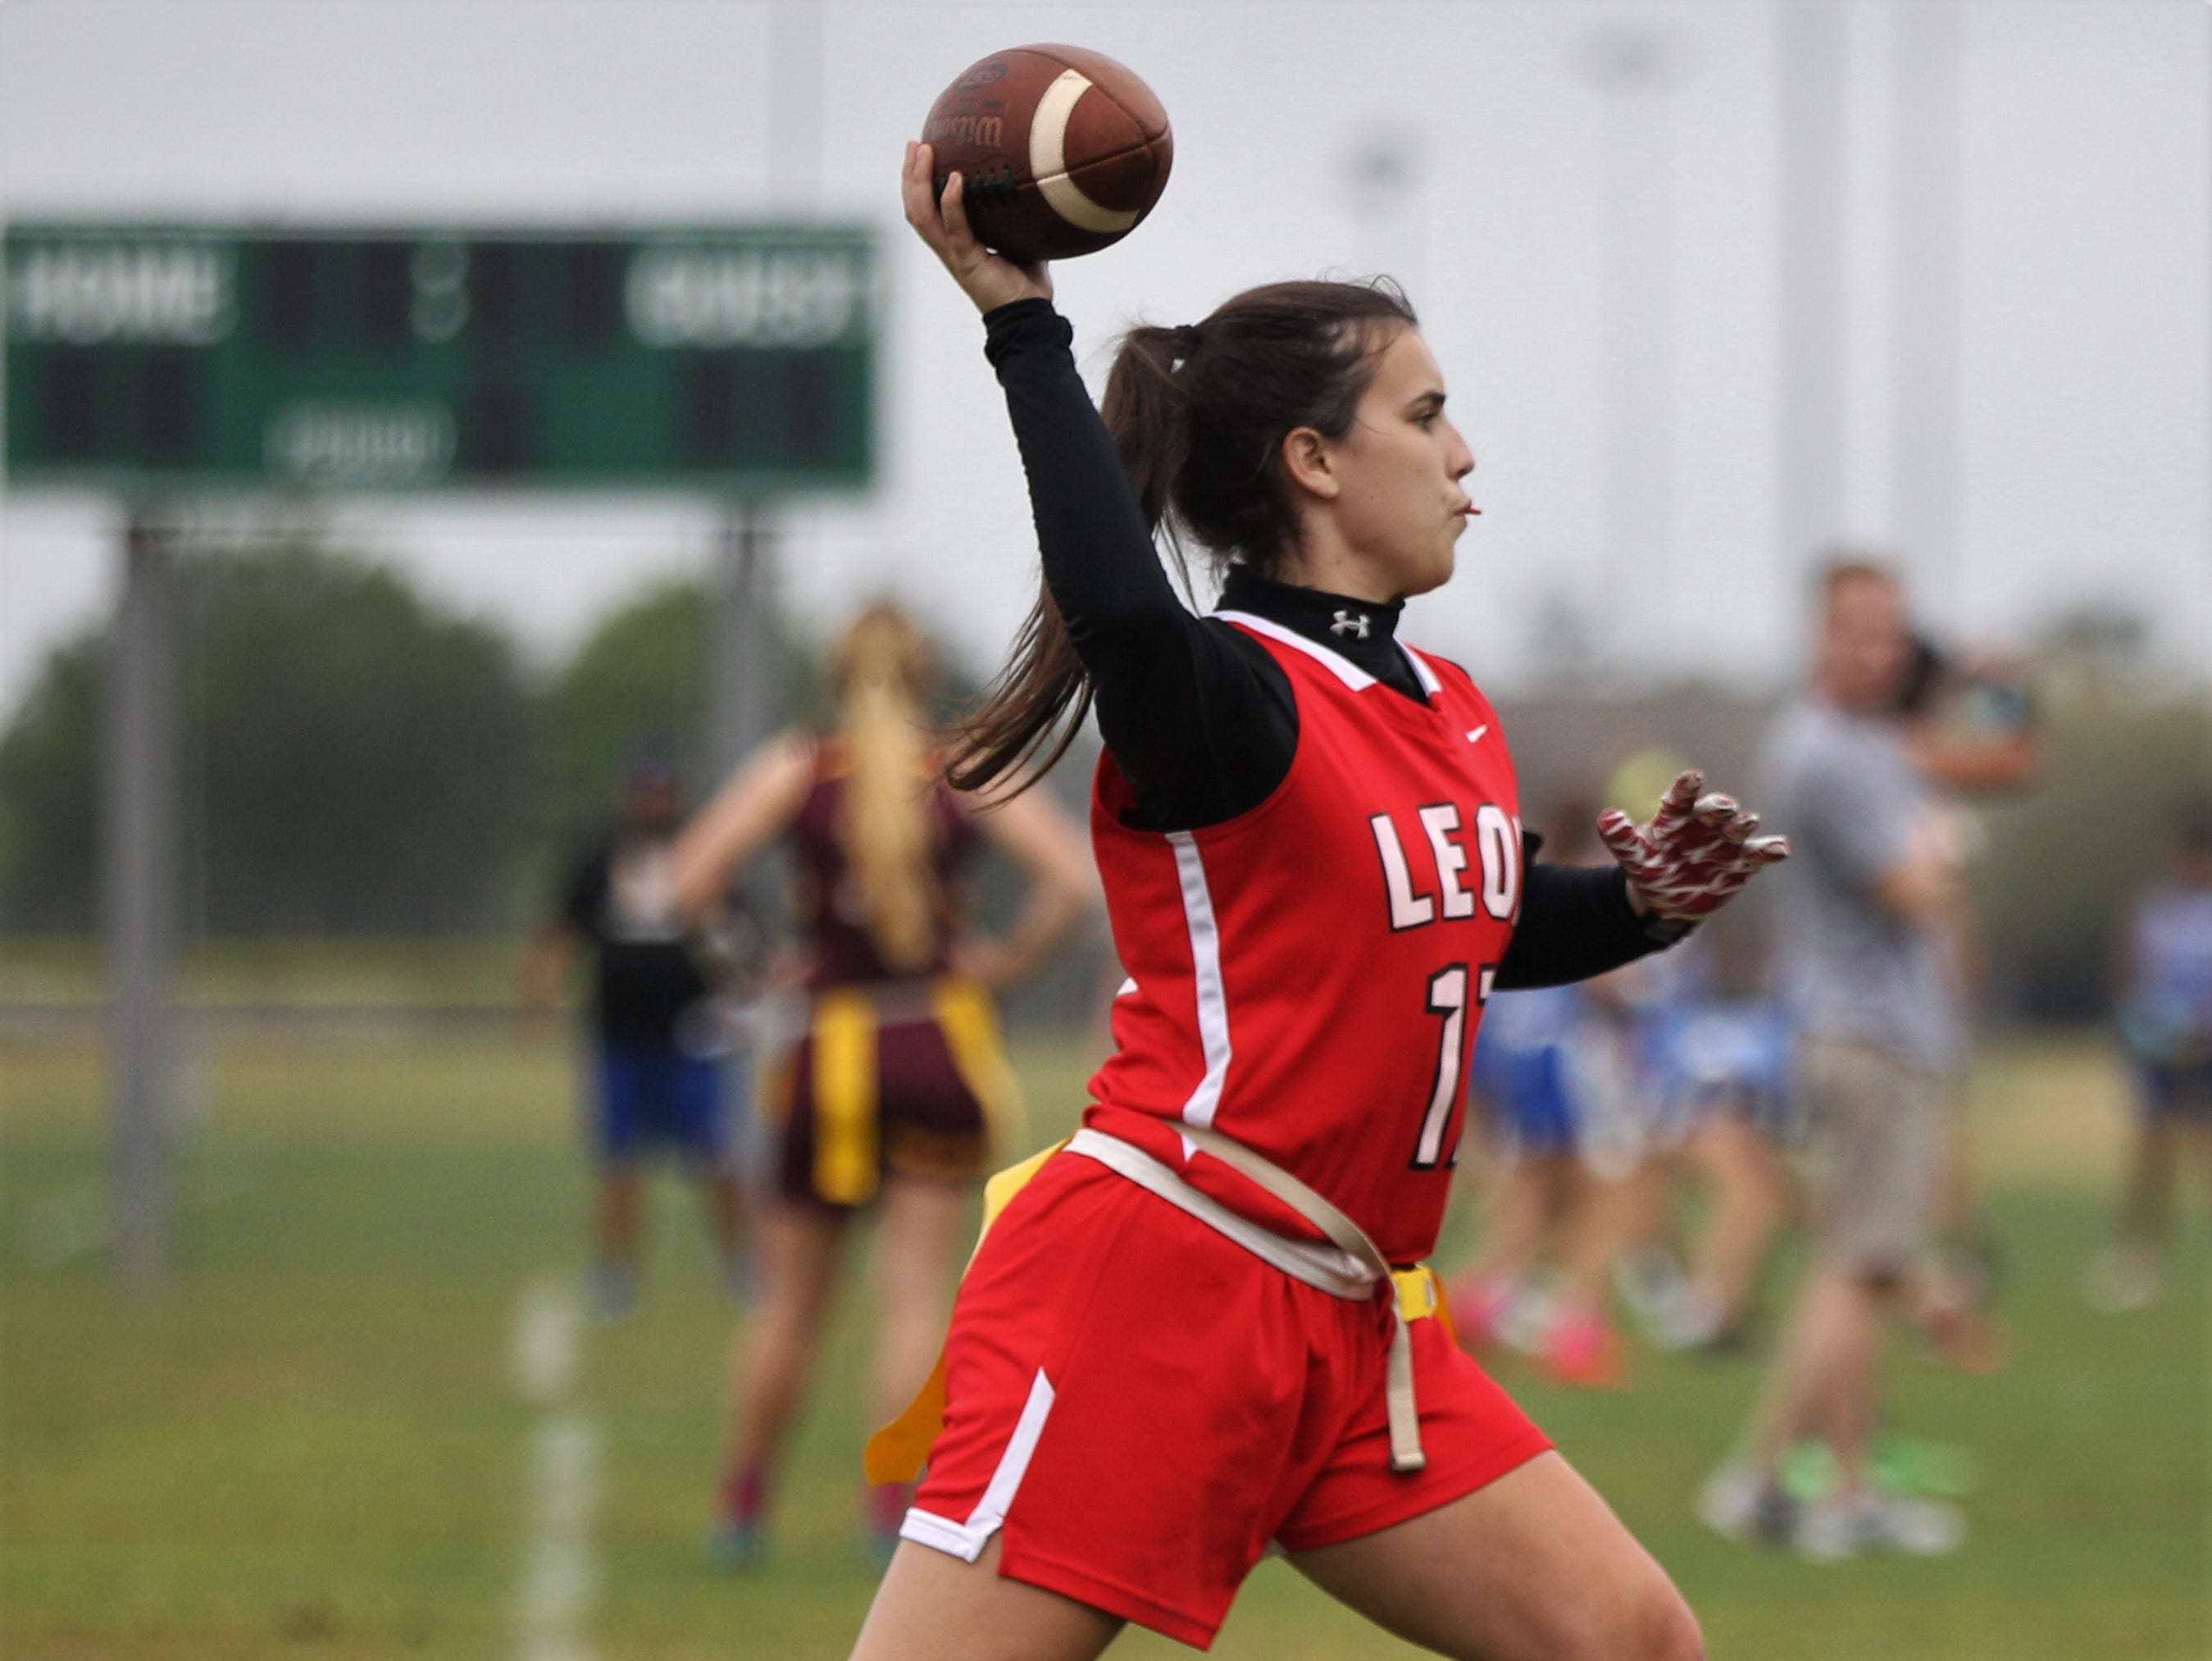 Leon quarterback Sophie Hightower plays in the 2019 Capital City Classic at the FSU Rec SportsPlex on April 6, 2019.